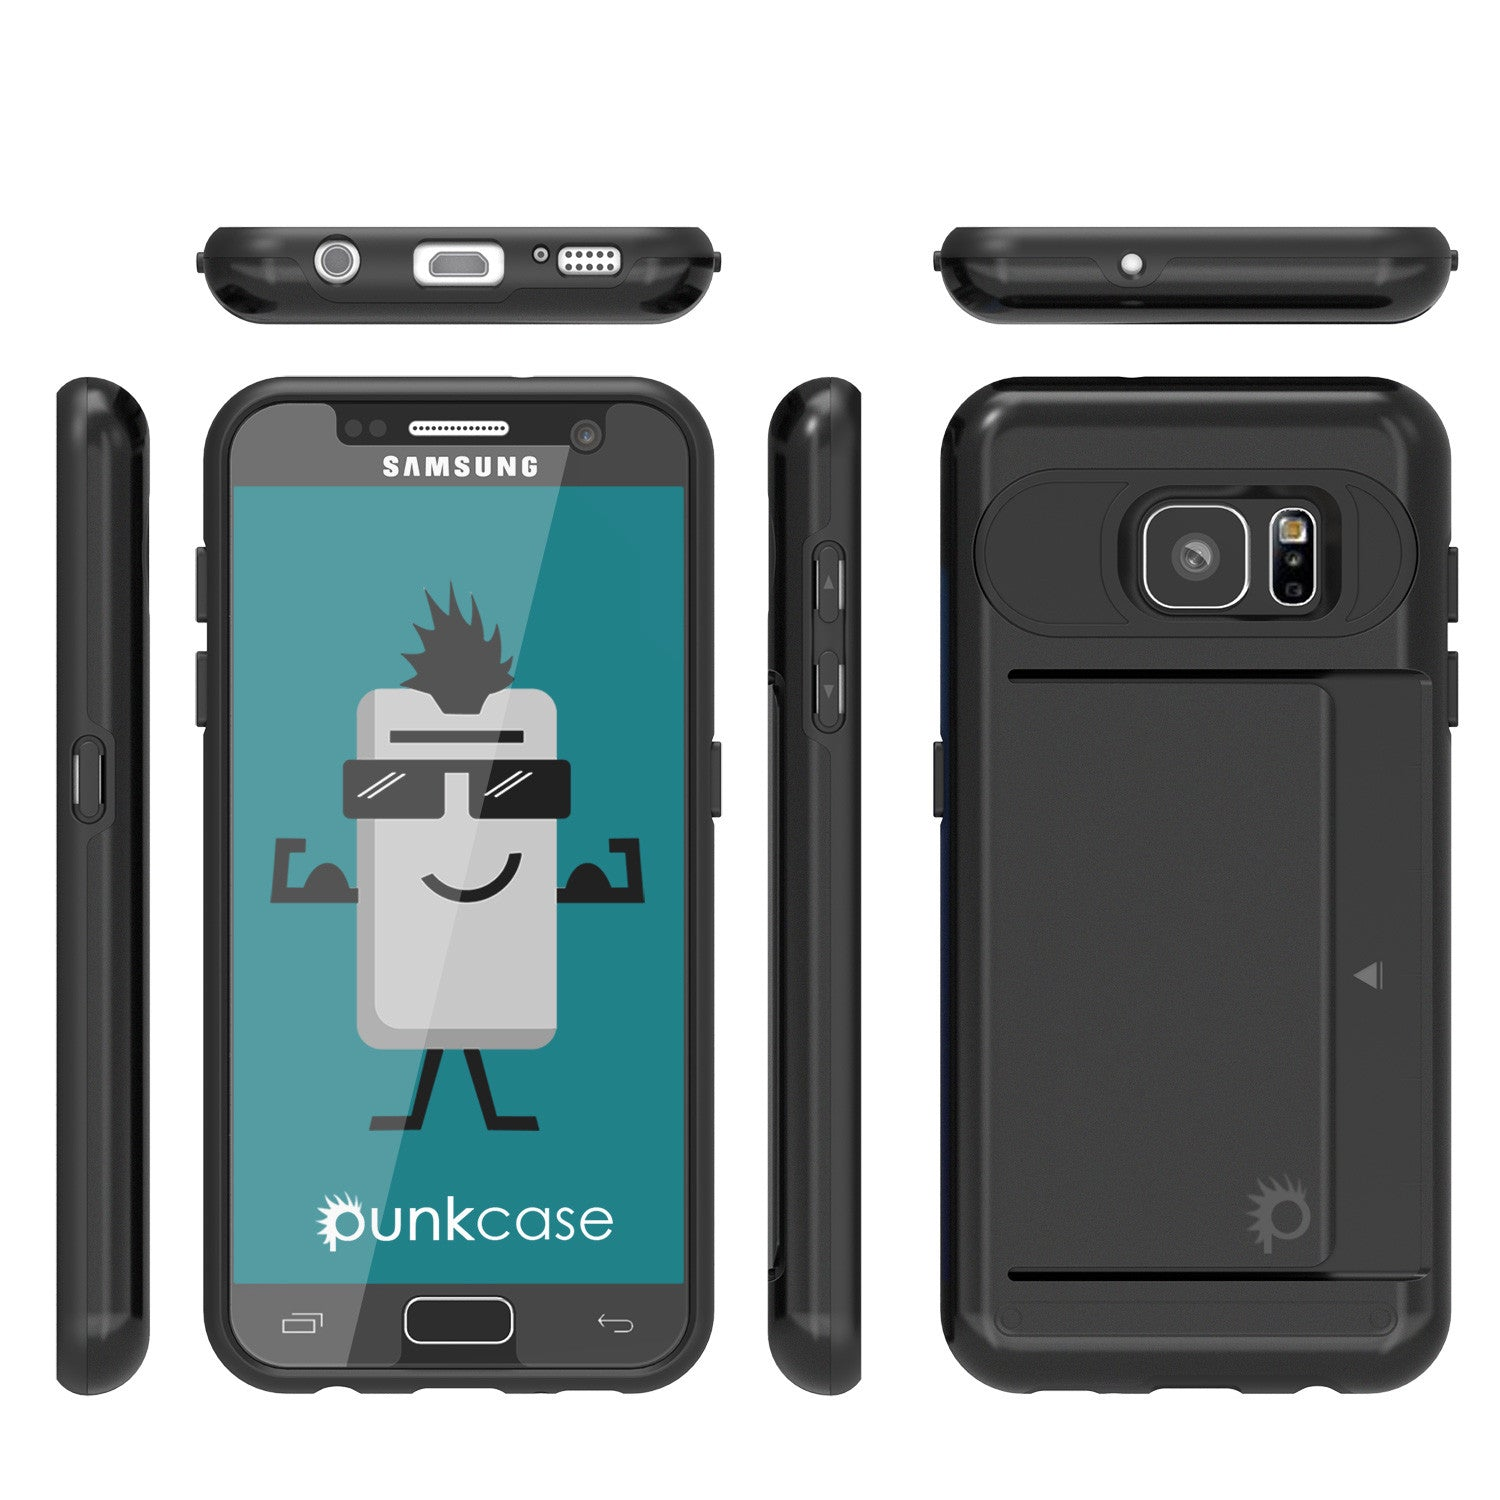 Galaxy s7 Case PunkCase CLUTCH Black Series Slim Armor Soft Cover Case w/ Tempered Glass